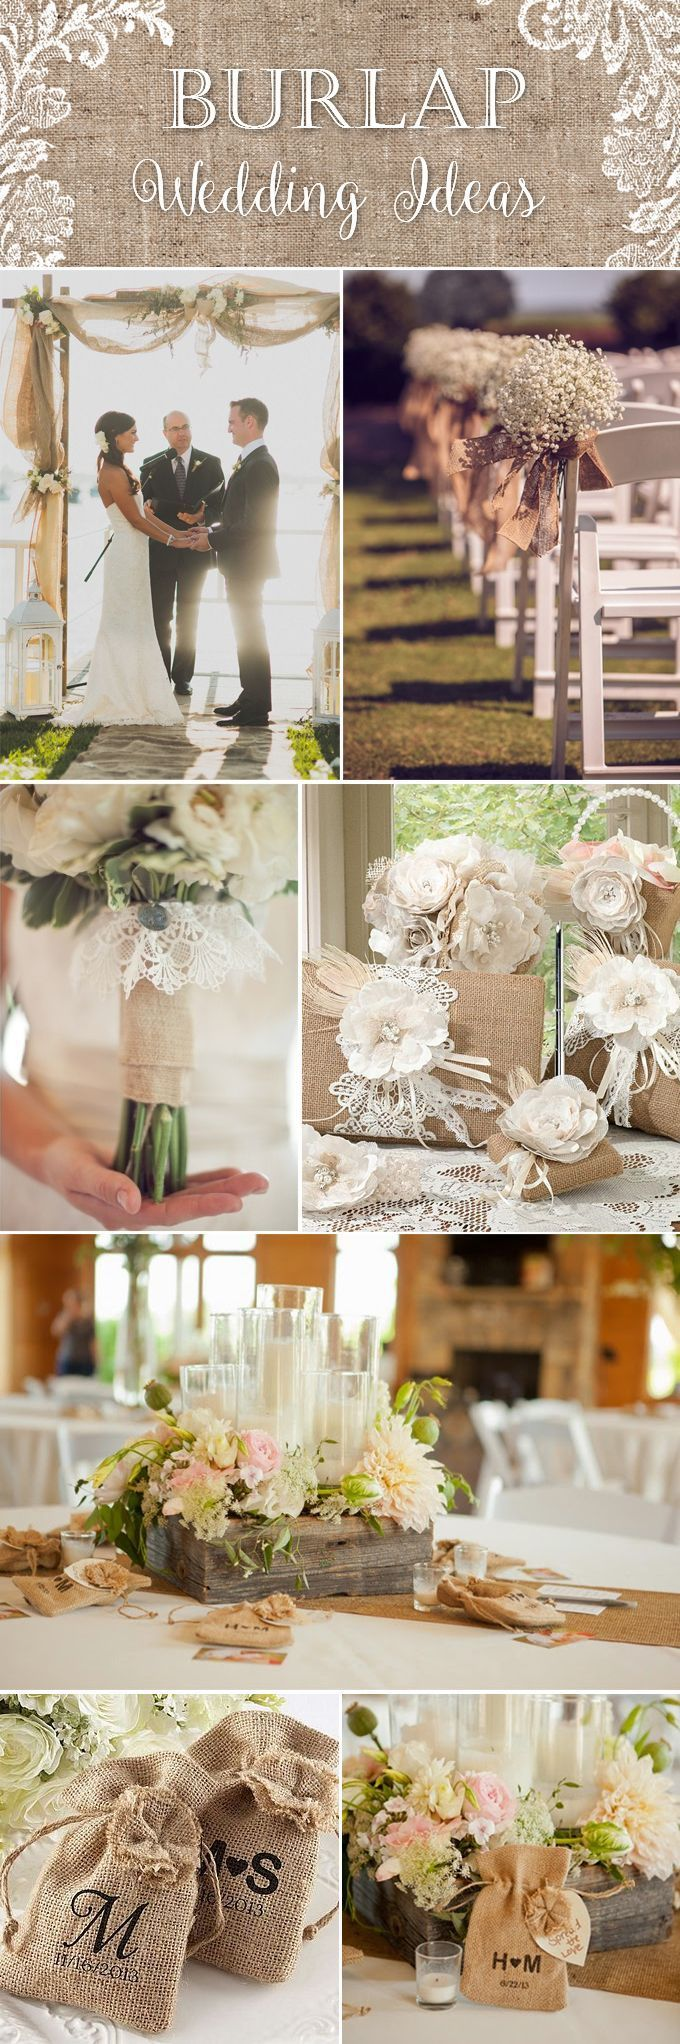 Burlap wedding decorations and ideas for the country, rustic, DIY, and casual-chic bride and groom.